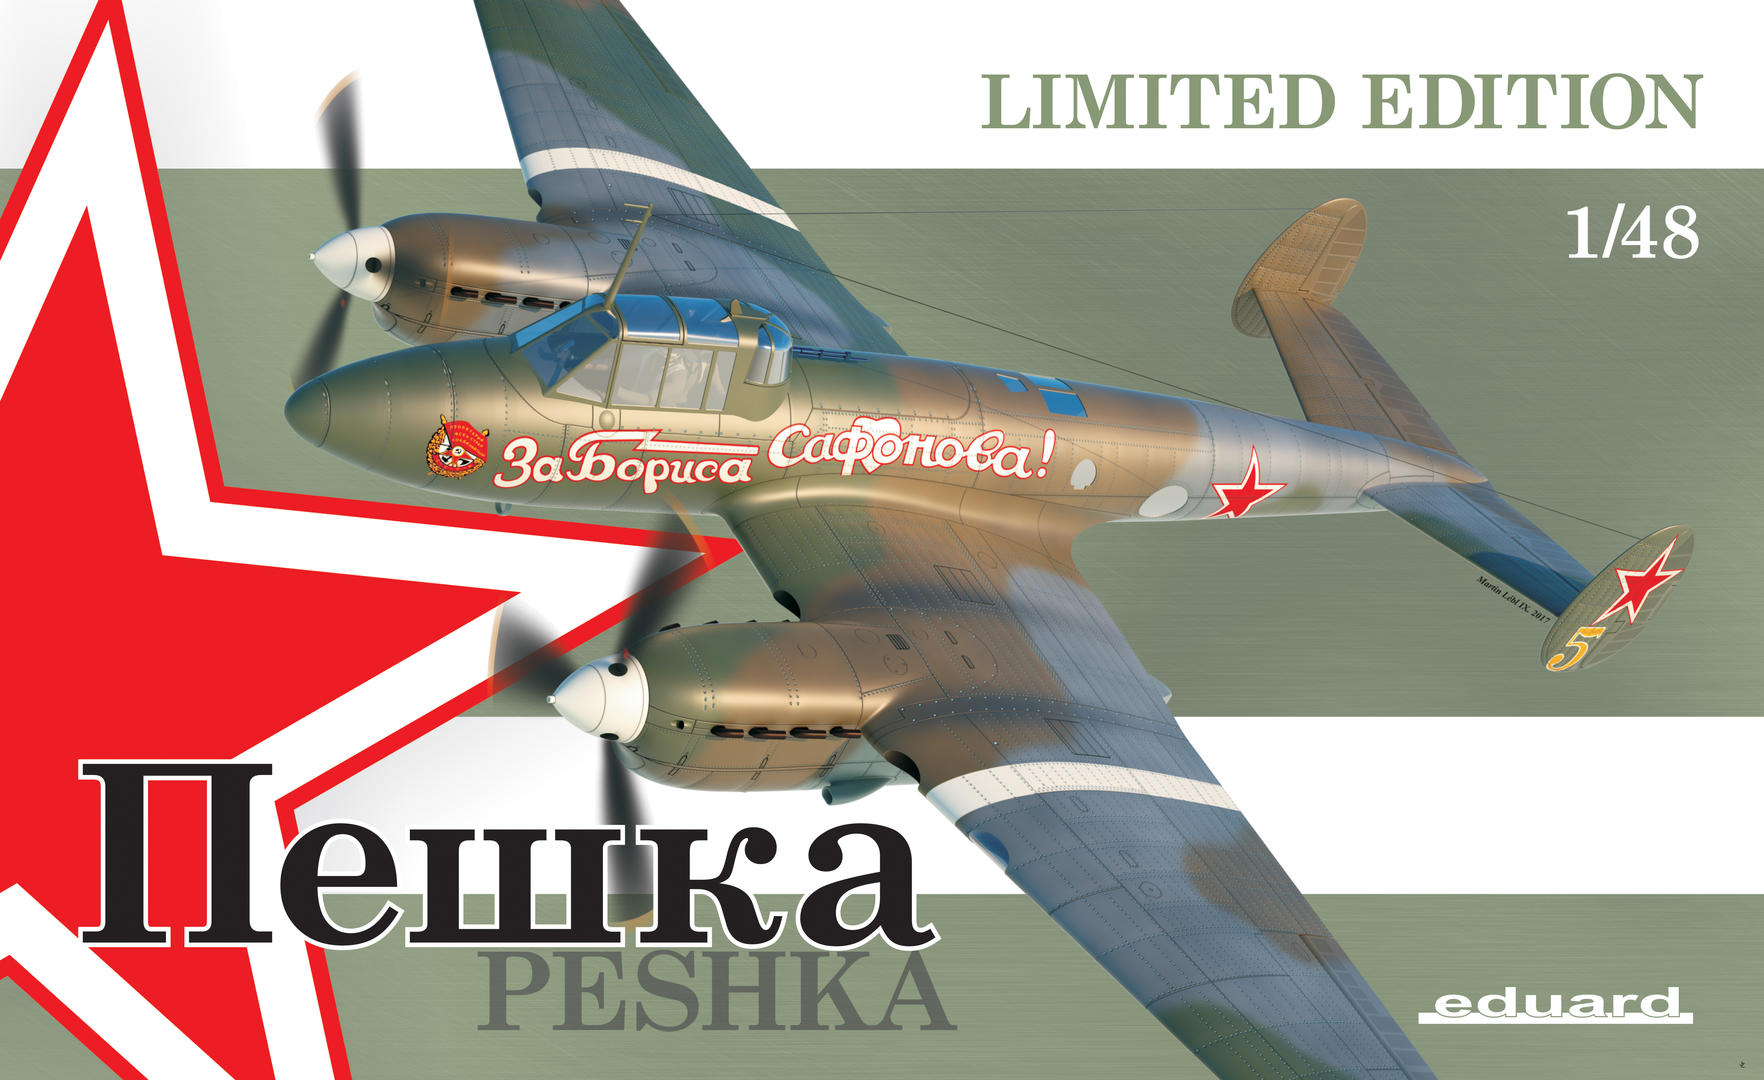 PESHKA (limited edition); 1:48